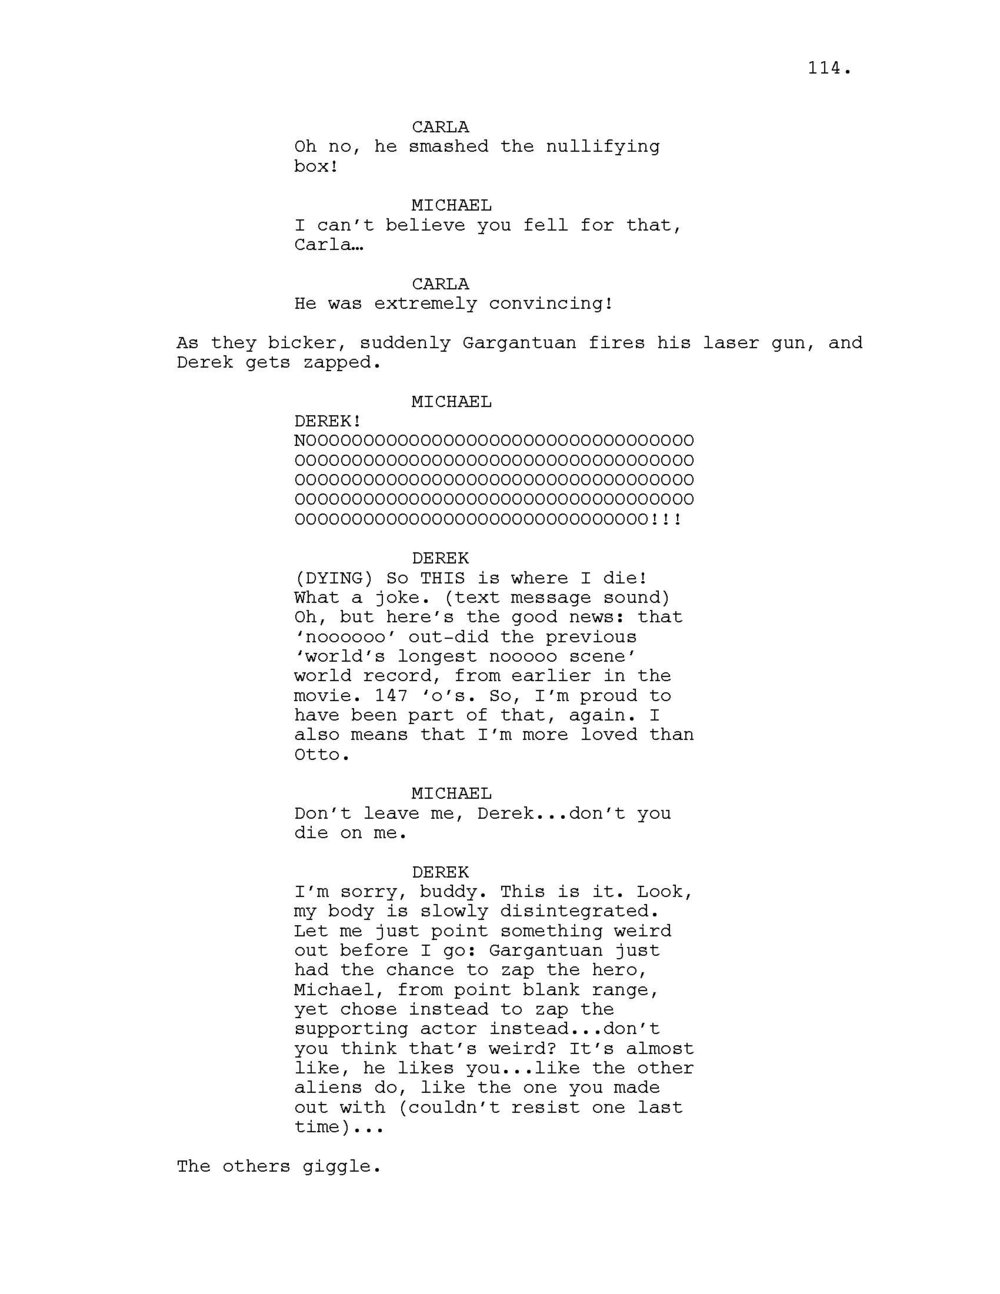 INVISIBLE WORLD SCRIPT_Page_115.jpg